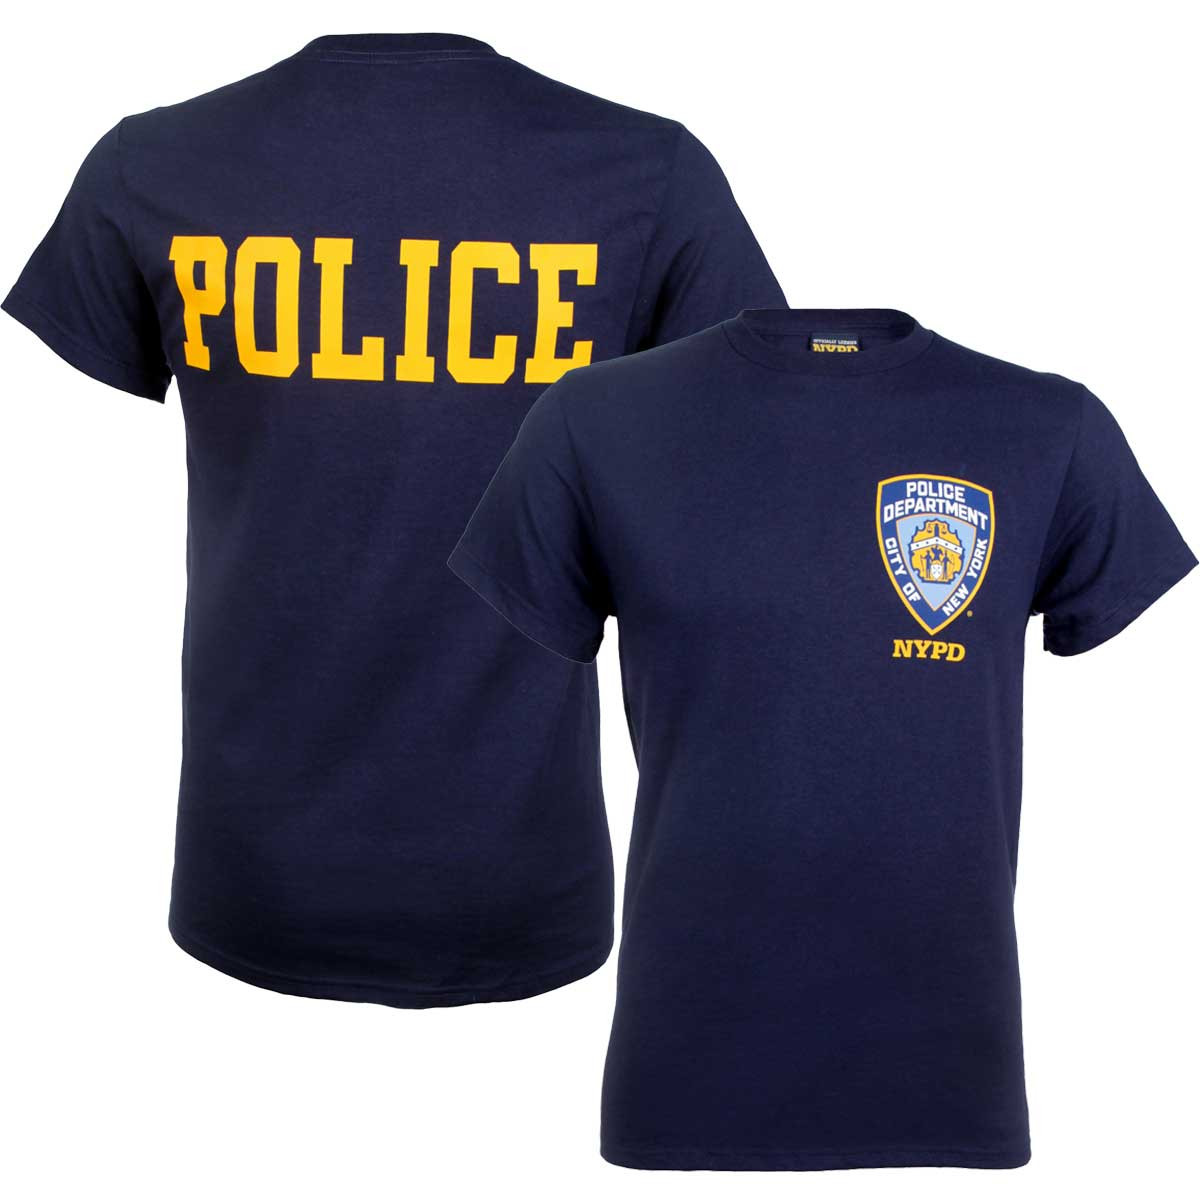 Nypd badge t shirt with police on back for Nyc custom t shirts